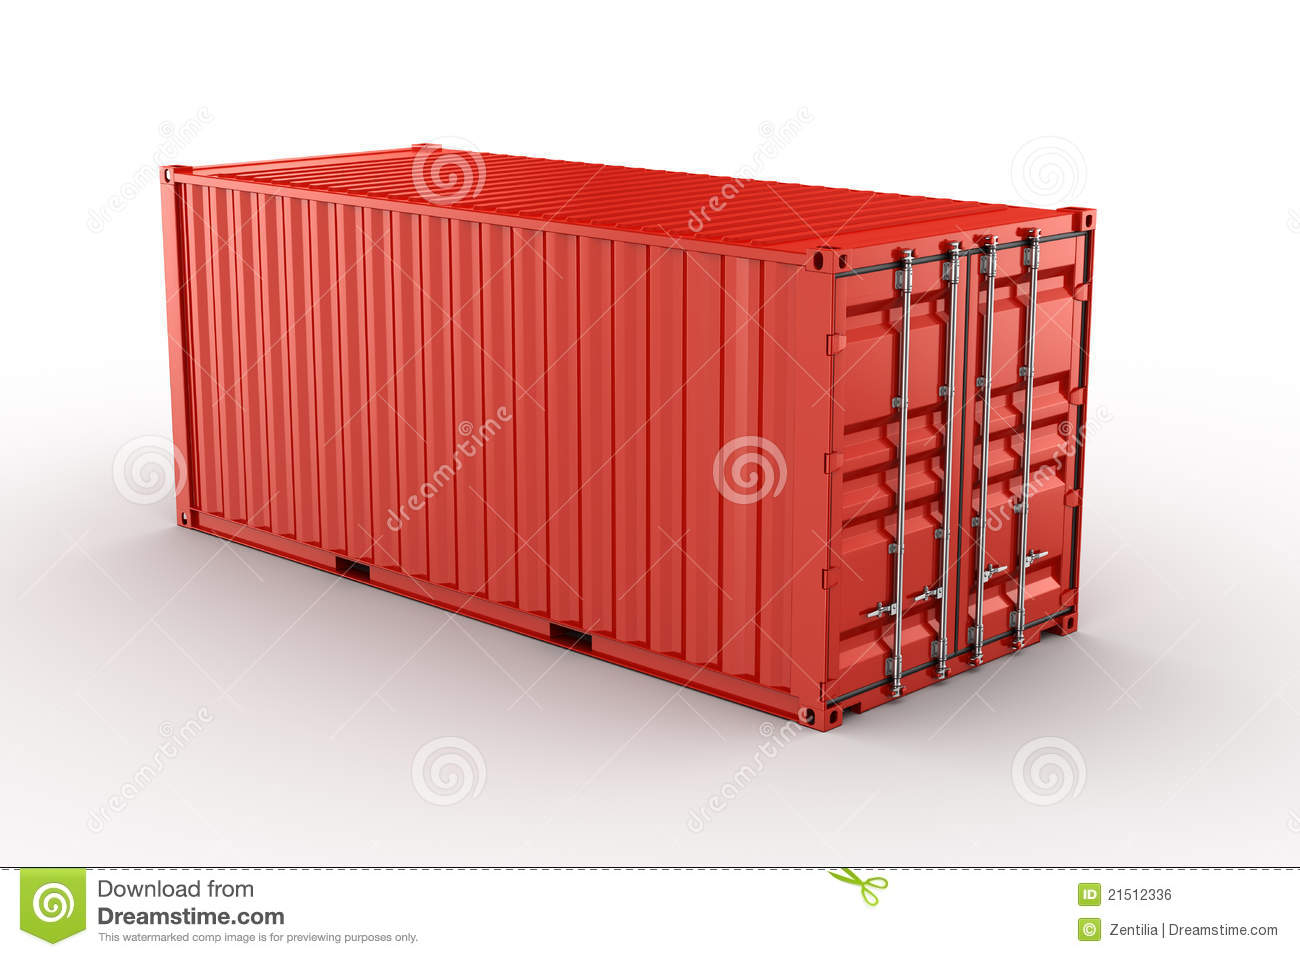 Shipping Container Royalty Free Stock Image - Image: 21512336